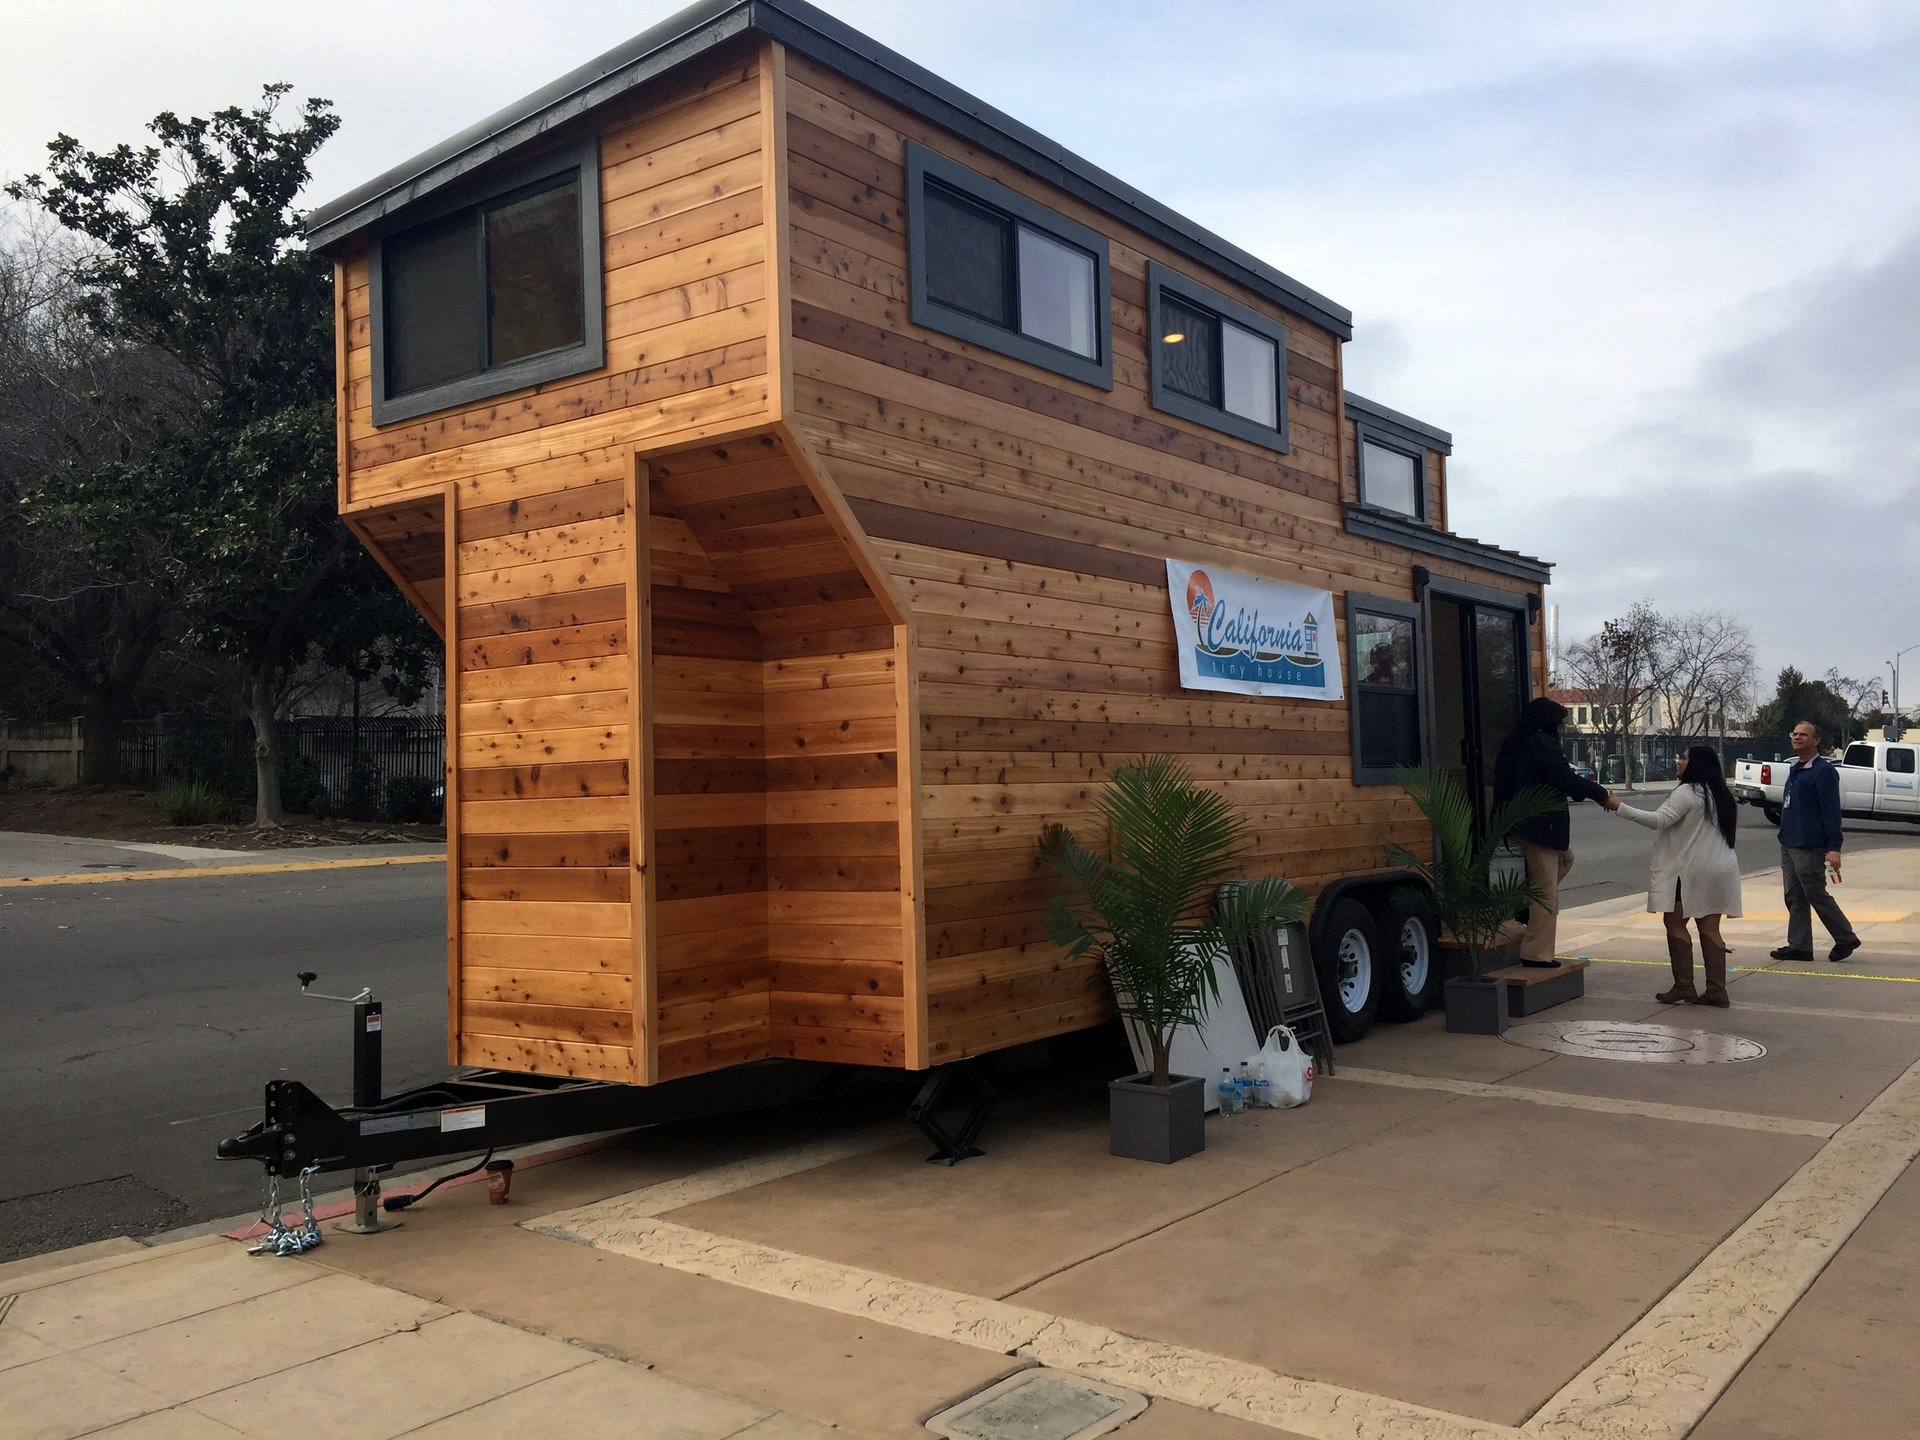 fresno legalizes tiny houses with new zoning change - Tiny Houses California